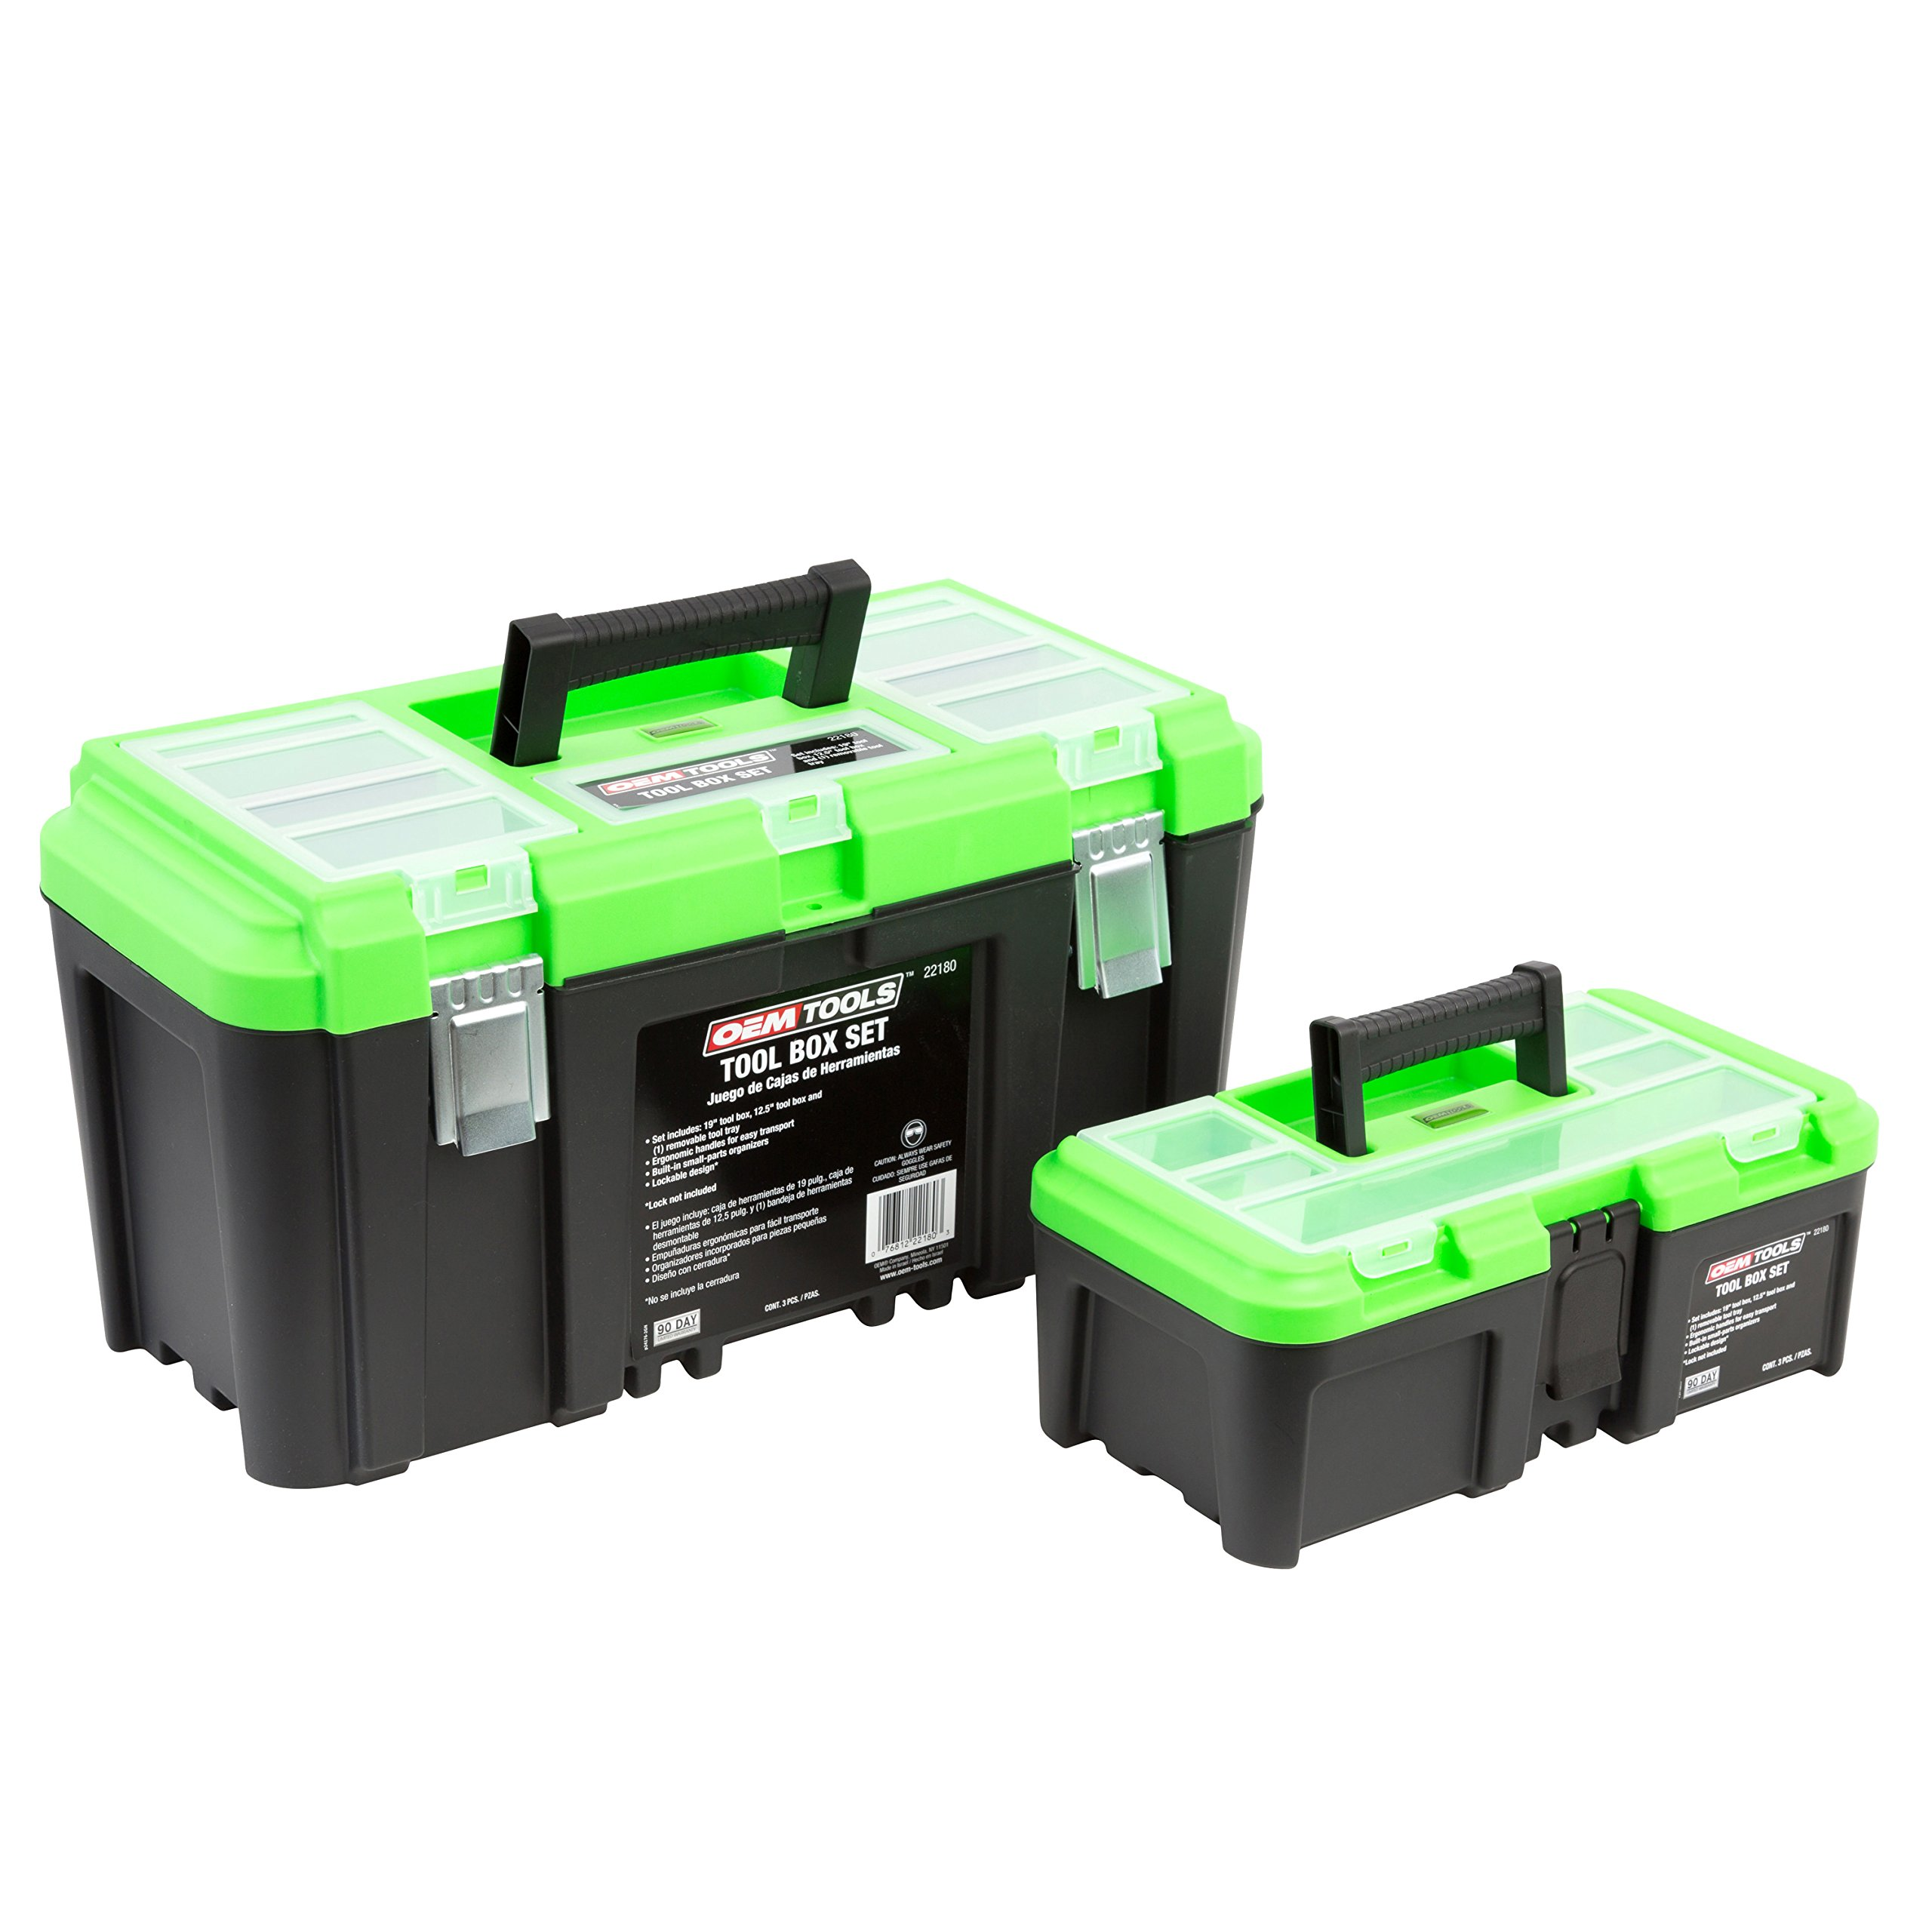 Tool Box with Removable Tool Tray by OEM